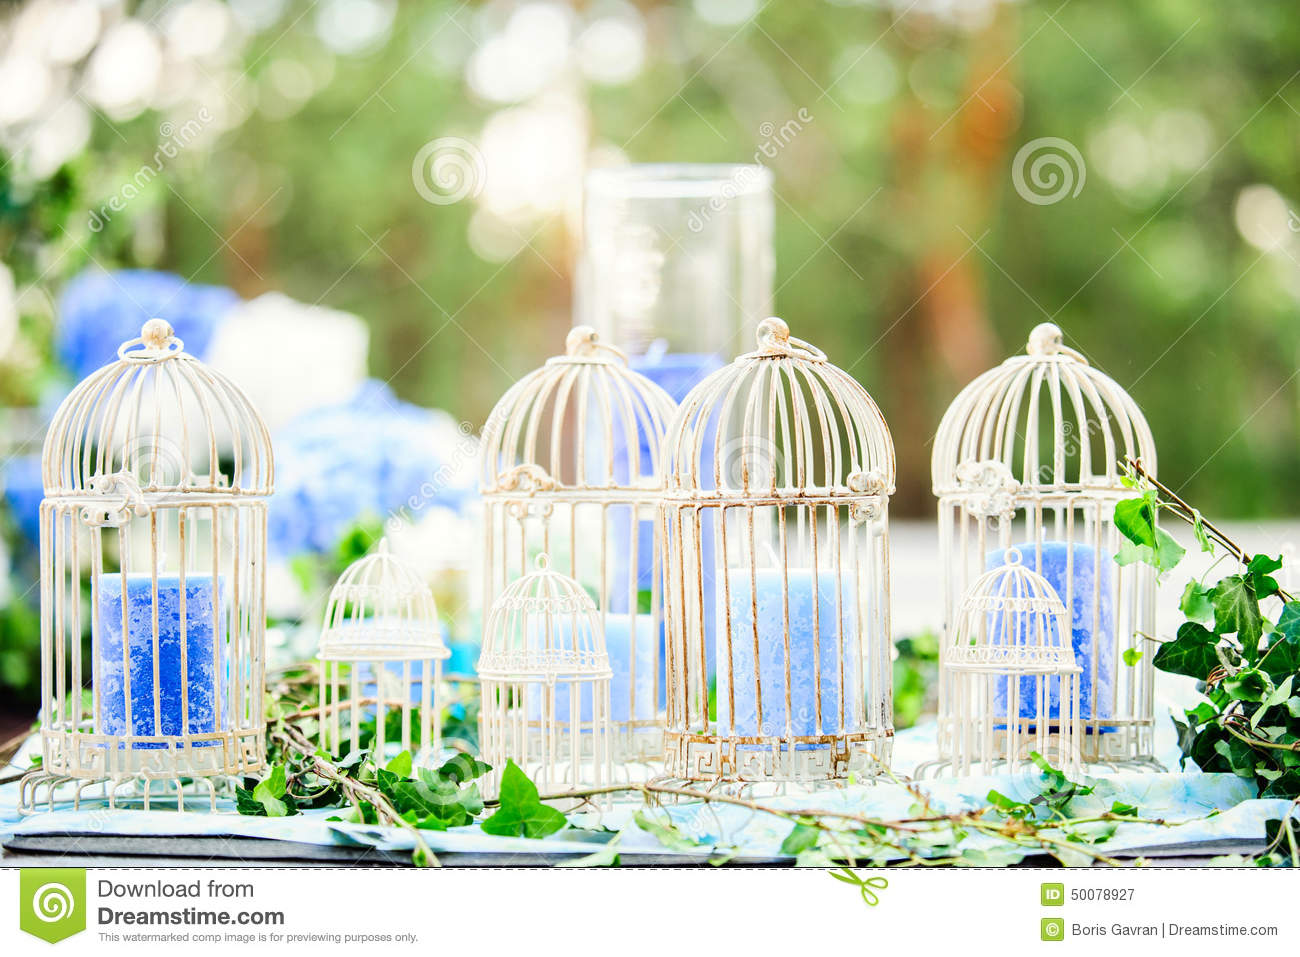 Wedding decor with birdcages and candles stock image image of wedding decor with birdcages and candles junglespirit Images